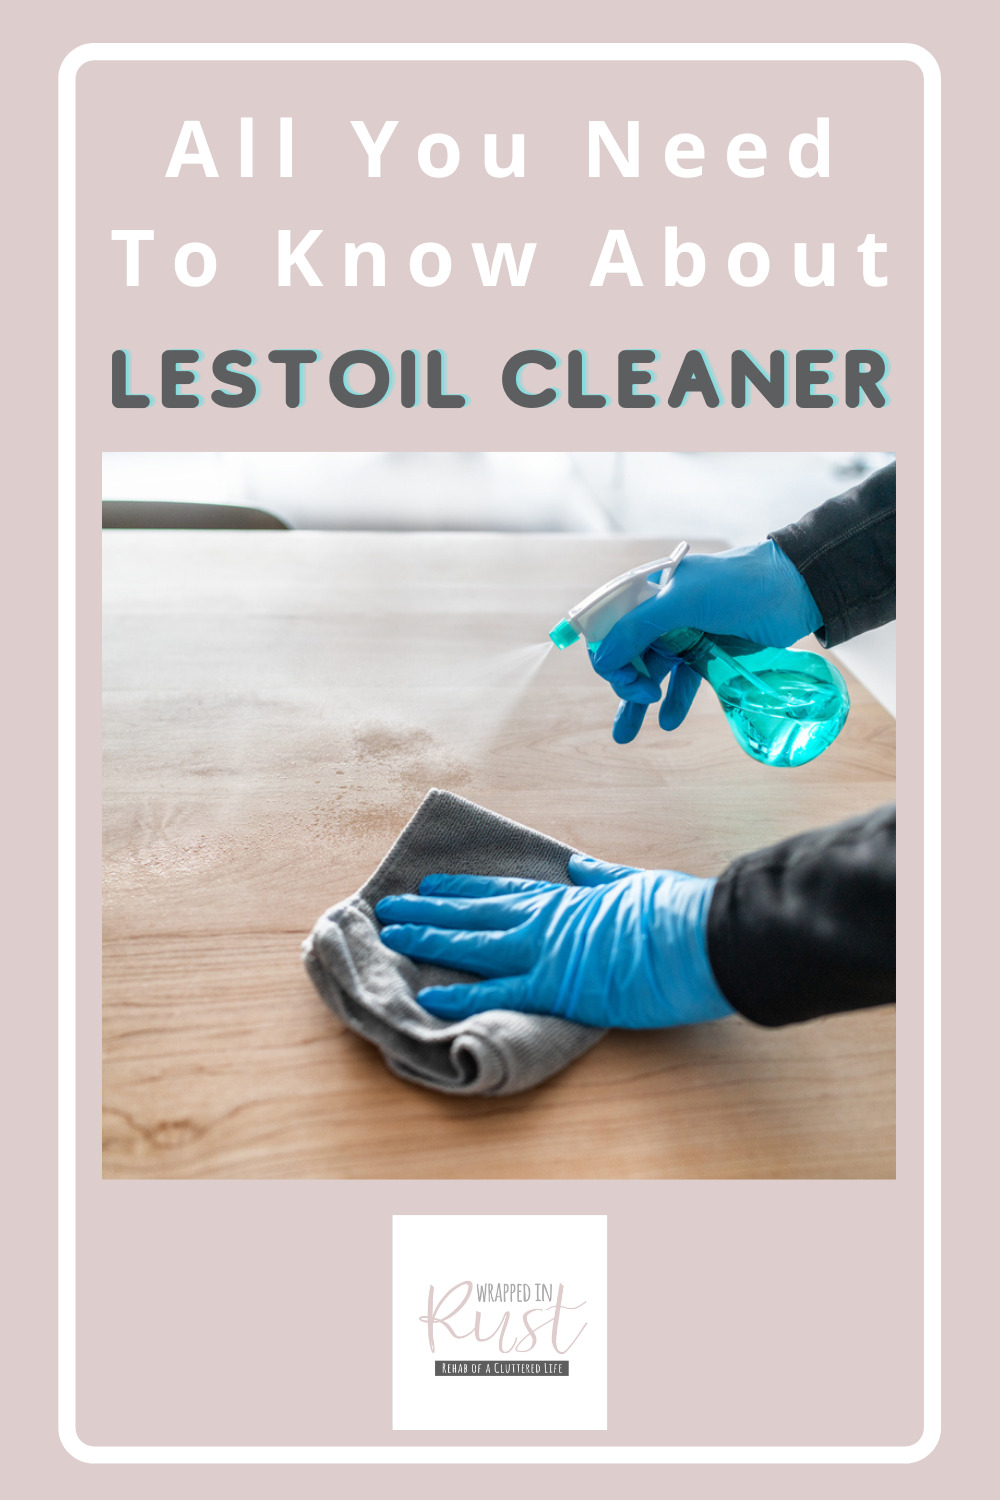 Wrappedinrust.com is filled full of genius cleaning ideas for all of your toughest messes and stains. Get ready for a big cleaning job! Find out tall you need to know about Lestoil cleaning agents!